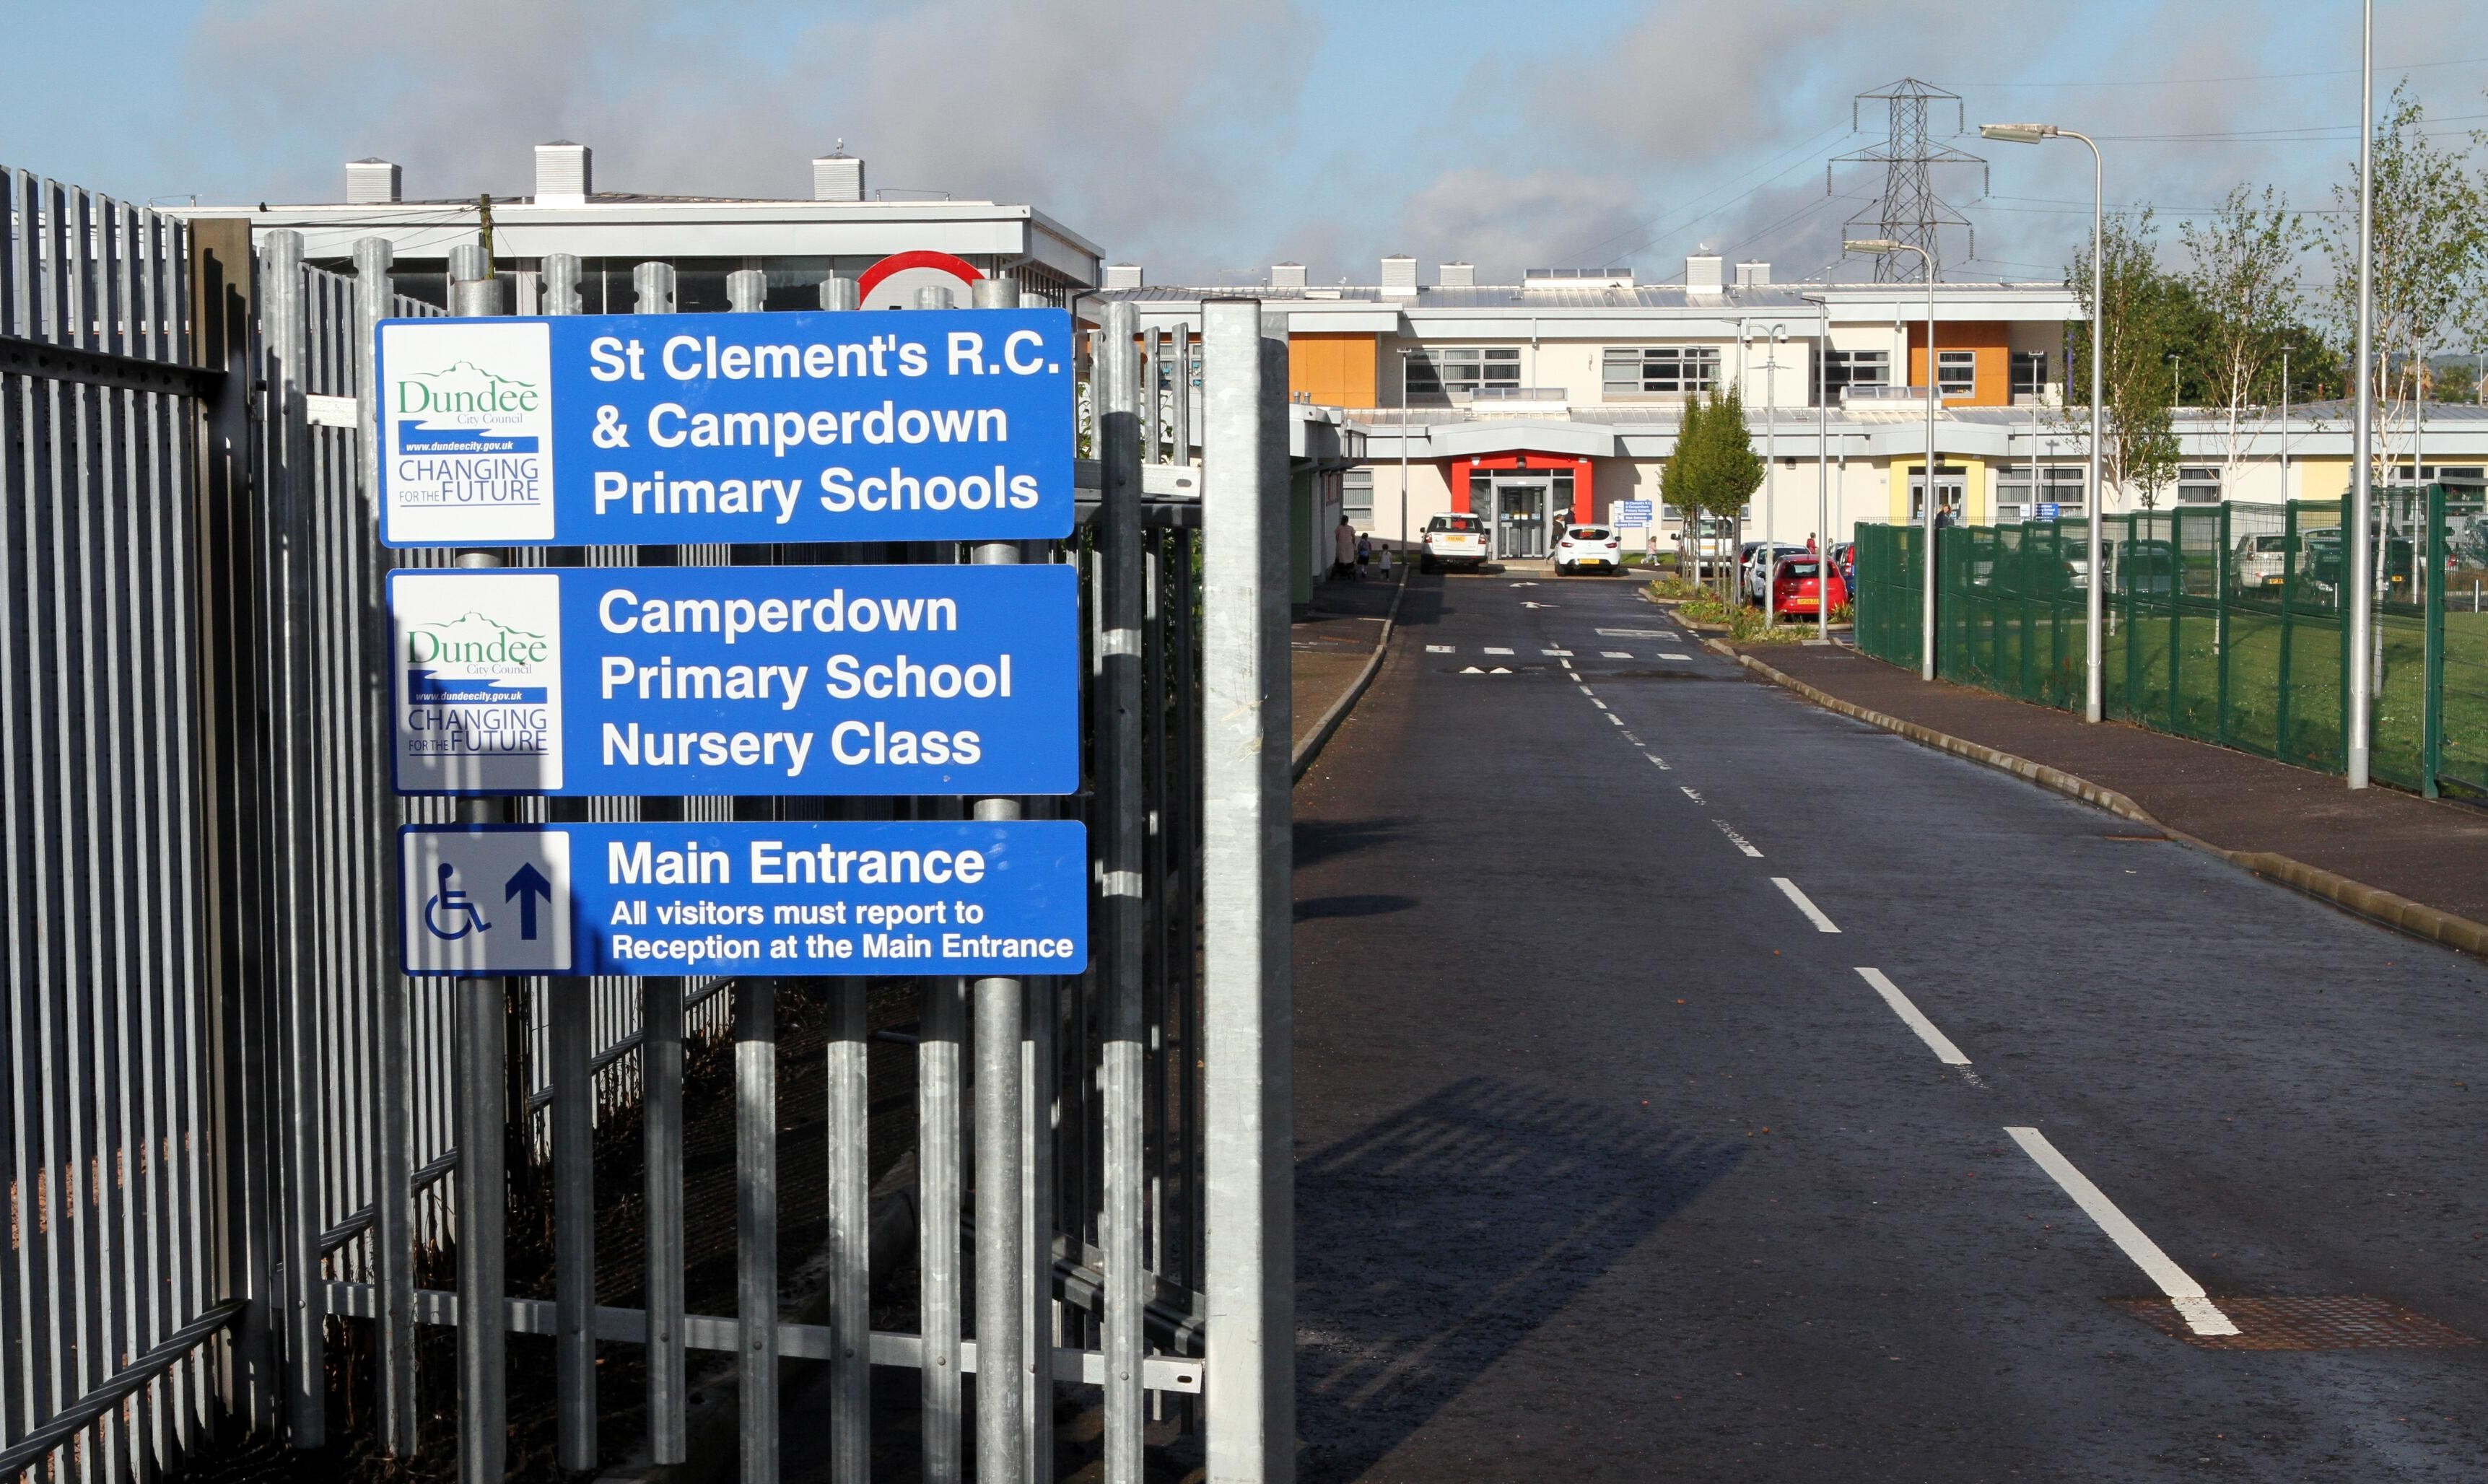 The attack took place outside Camperdown Primary School.